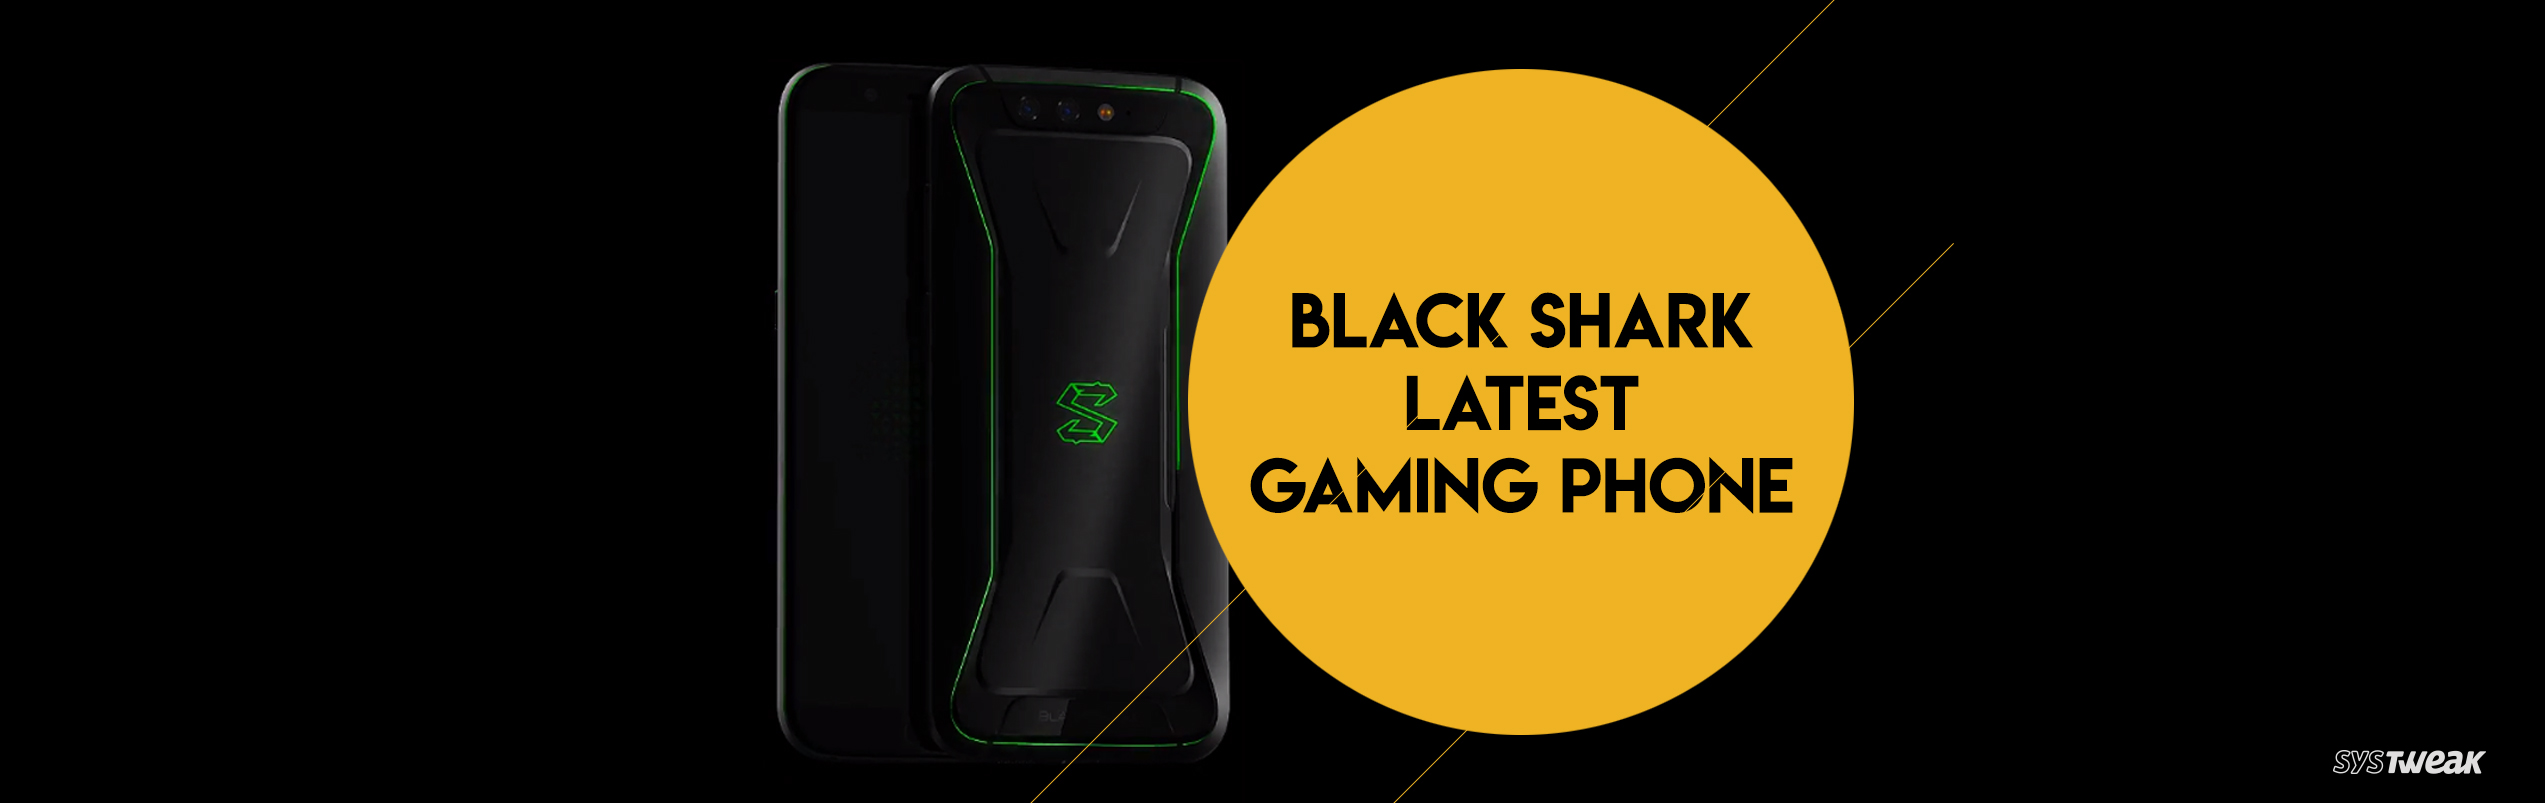 Gaming Phone: Black Shark by Xiaomi